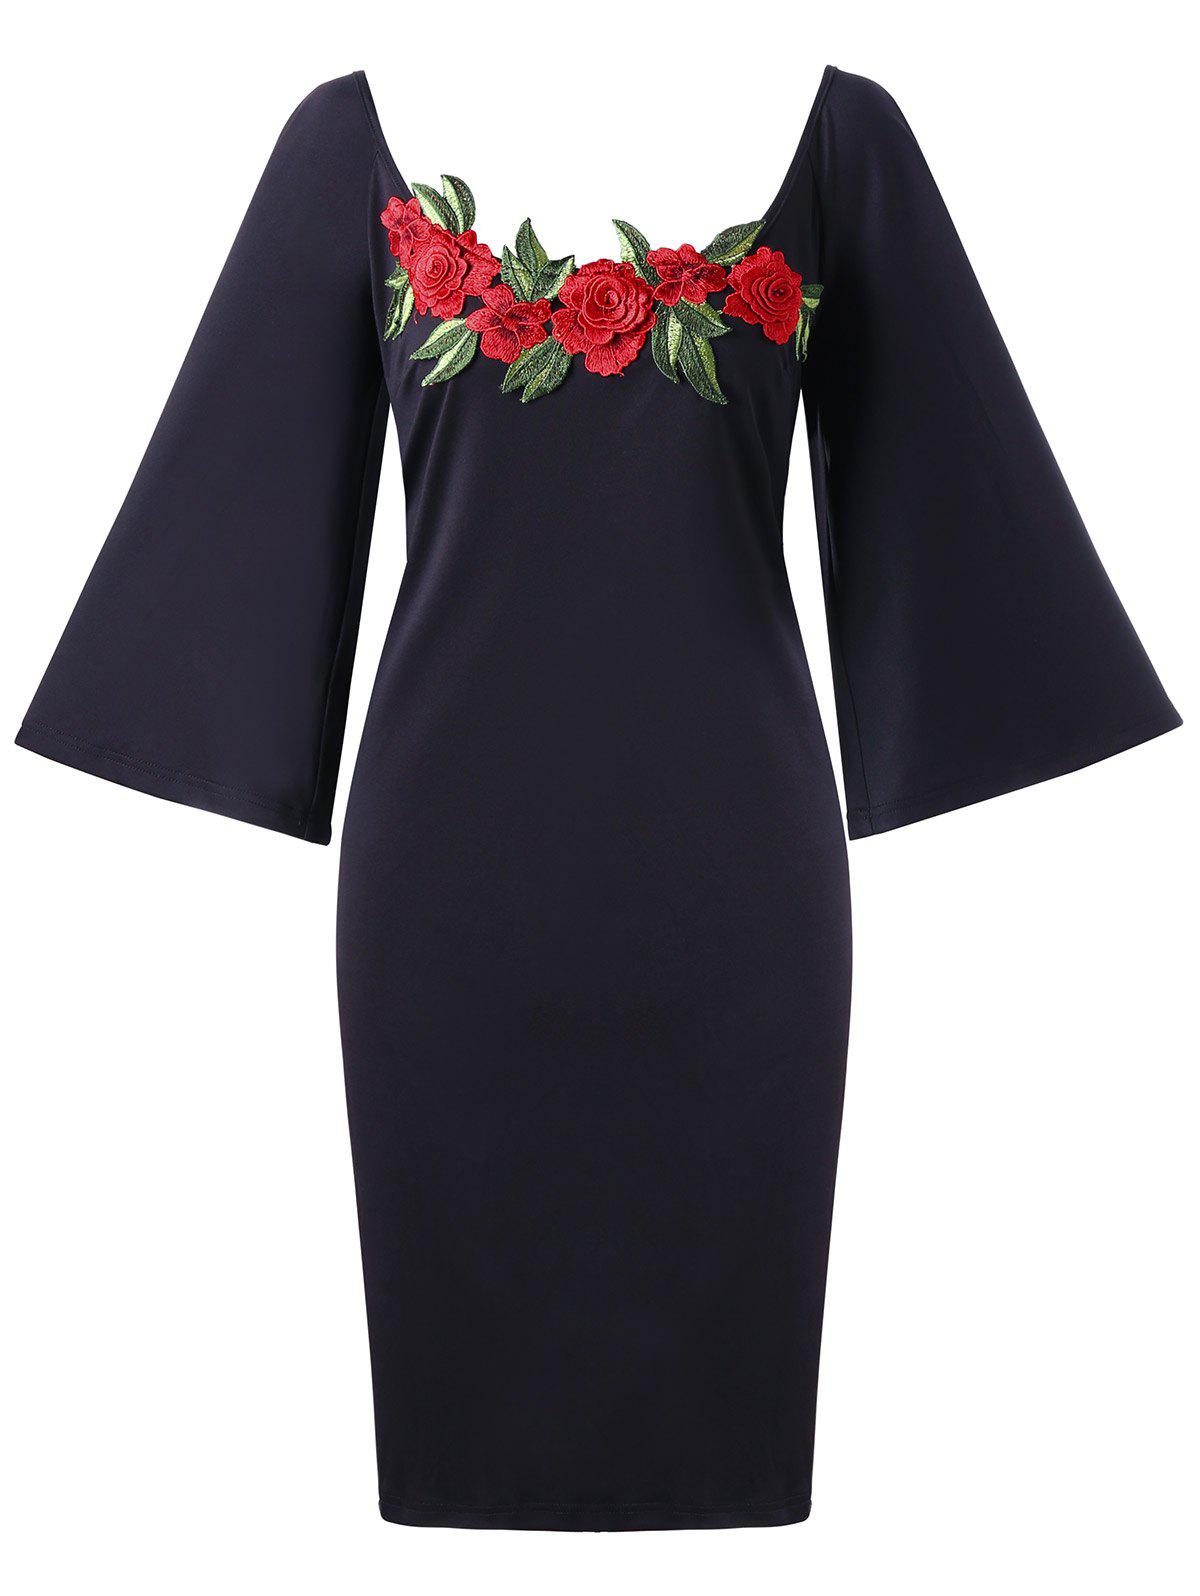 Flare Sleeve Plus Size Embroidery Bodycon DressWOMEN<br><br>Size: 3XL; Color: BLACK; Style: Brief; Material: Polyester,Spandex; Silhouette: Bodycon; Dresses Length: Knee-Length; Neckline: Scoop Neck; Sleeve Length: 3/4 Length Sleeves; Embellishment: Embroidery; Pattern Type: Solid; With Belt: No; Season: Fall,Spring; Weight: 0.3670kg; Package Contents: 1 x Dress;